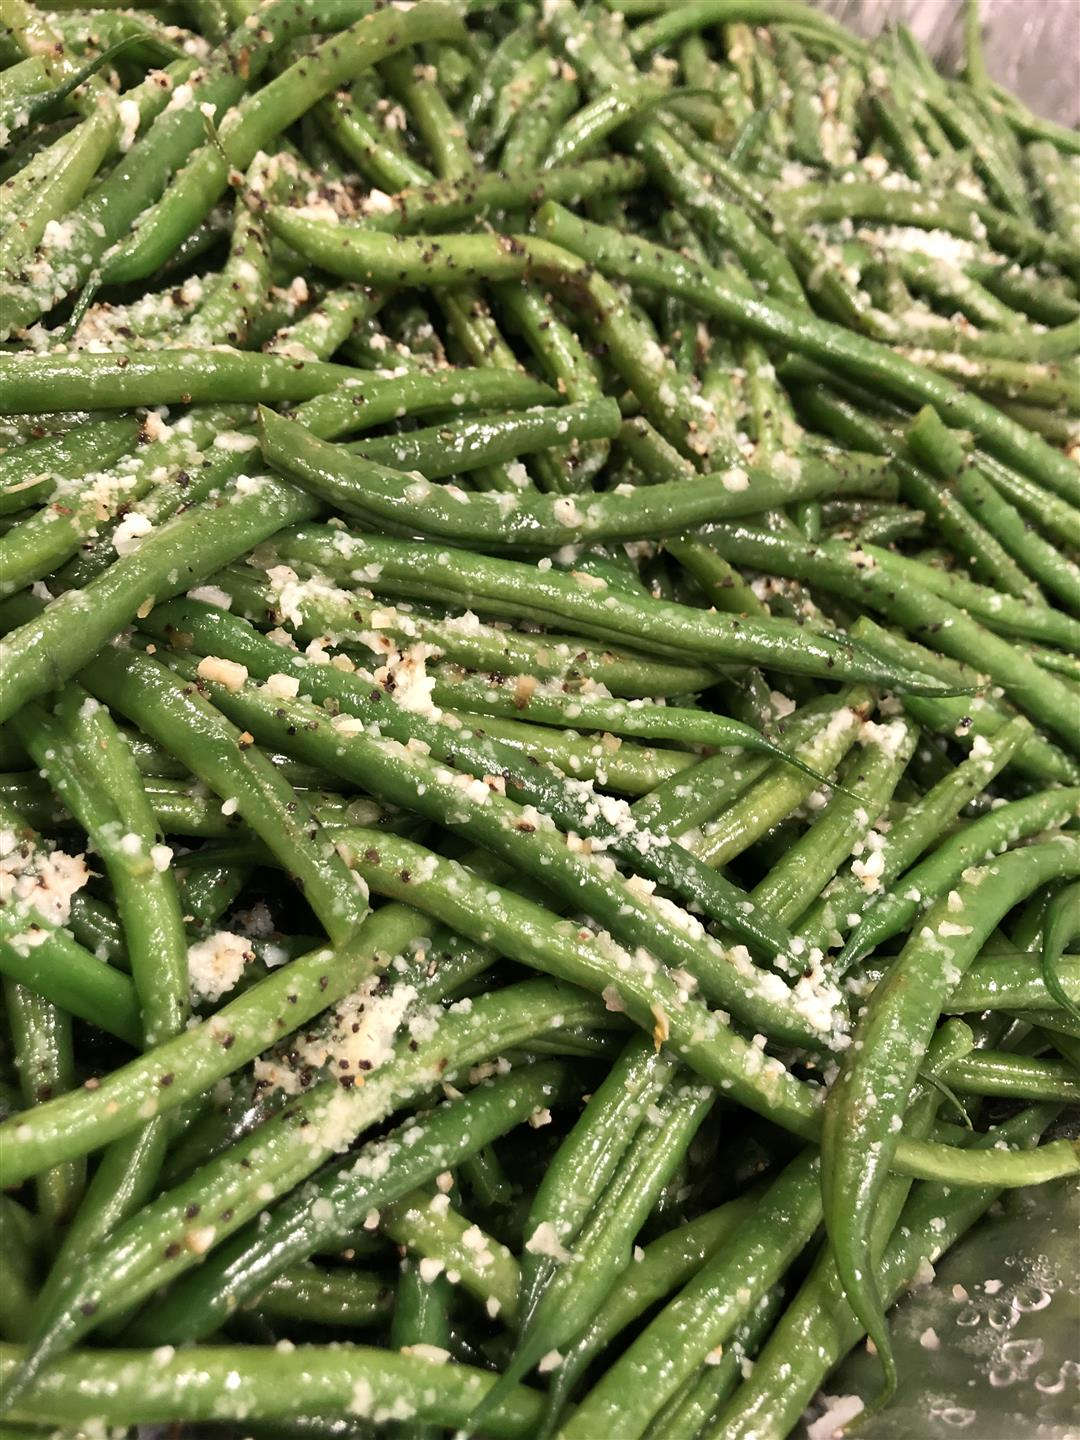 tray of seasoned green beans